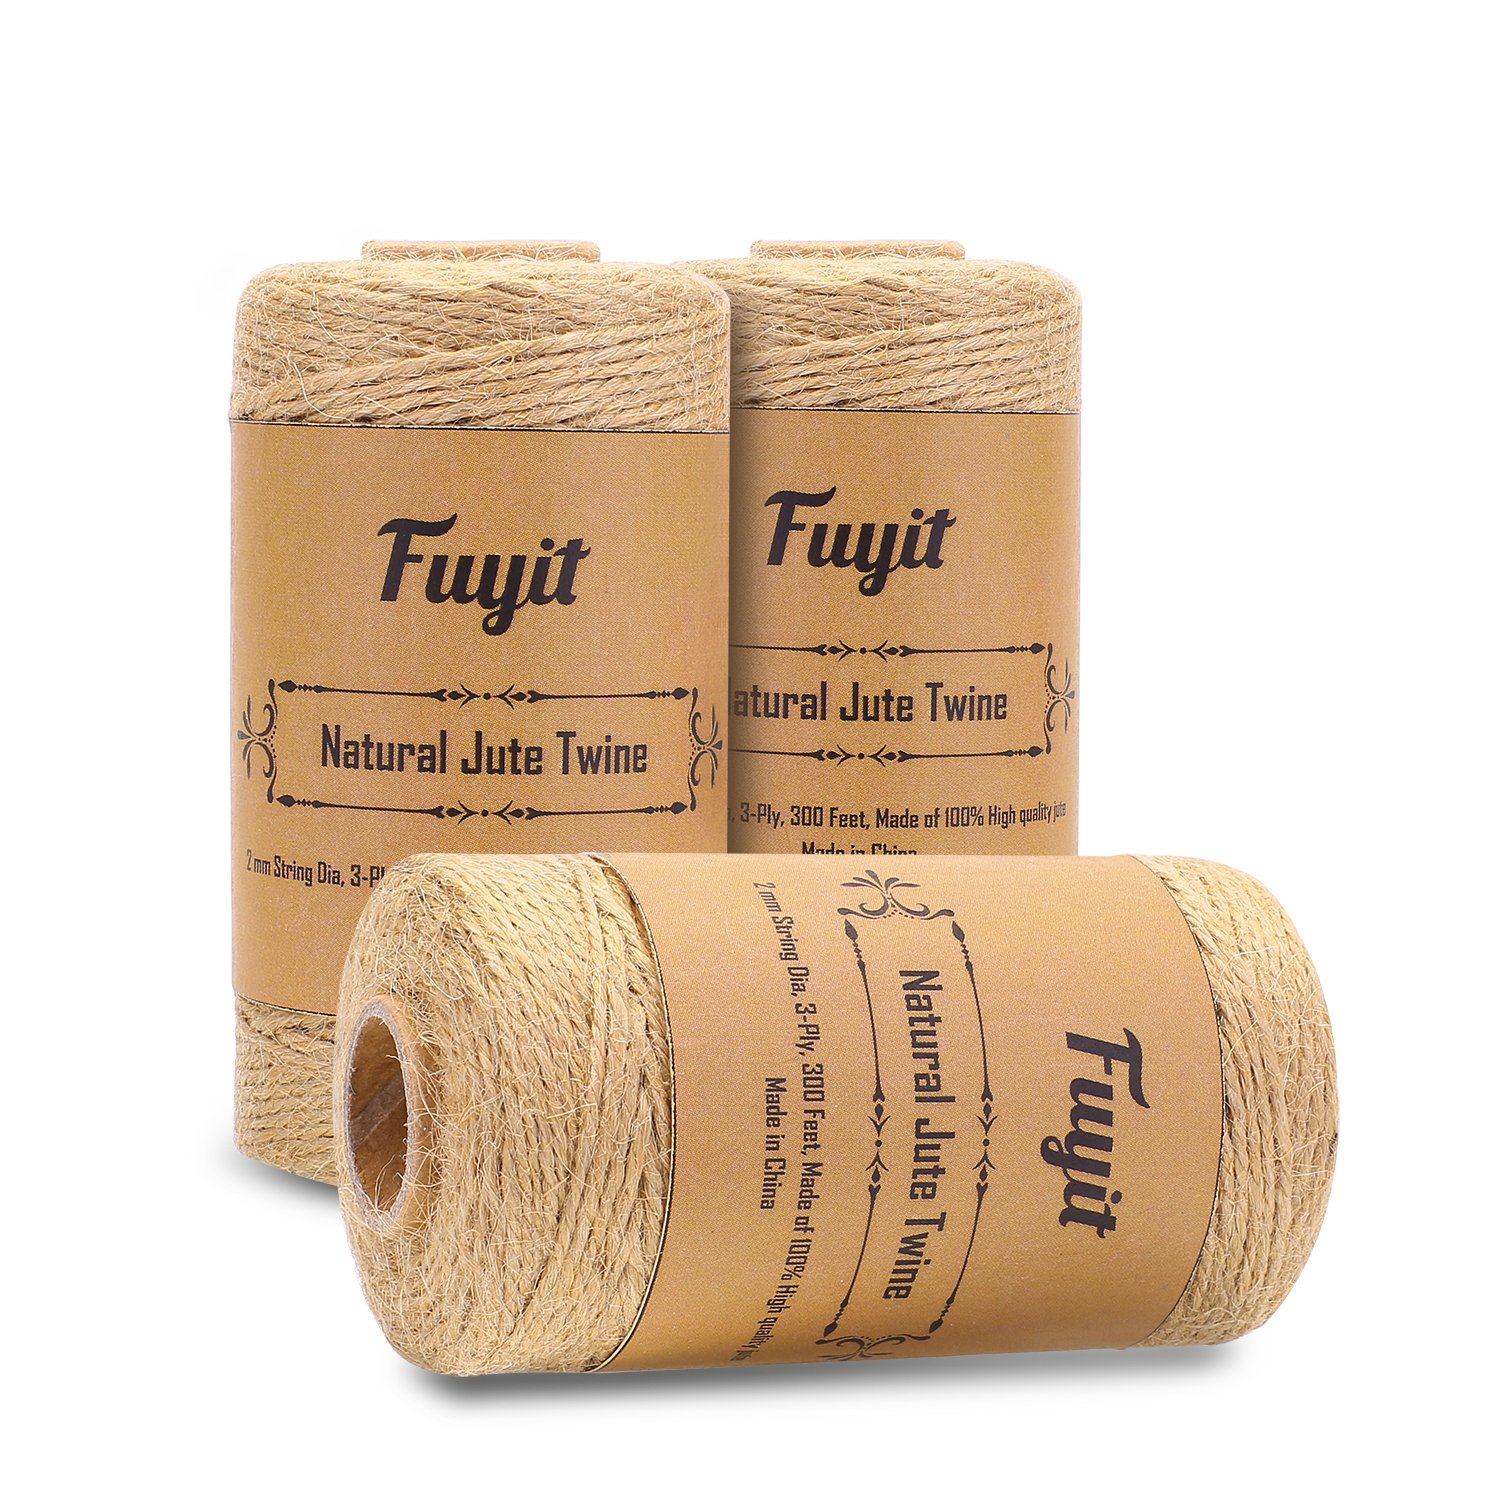 Fuyit 3 Pcs Natural Jute Twine String 1000 Feet Arts and Crafts Jute Rope Cord Heavy Duty Industrial Packing Materials Packing String for Gifts,Festive and Gardening